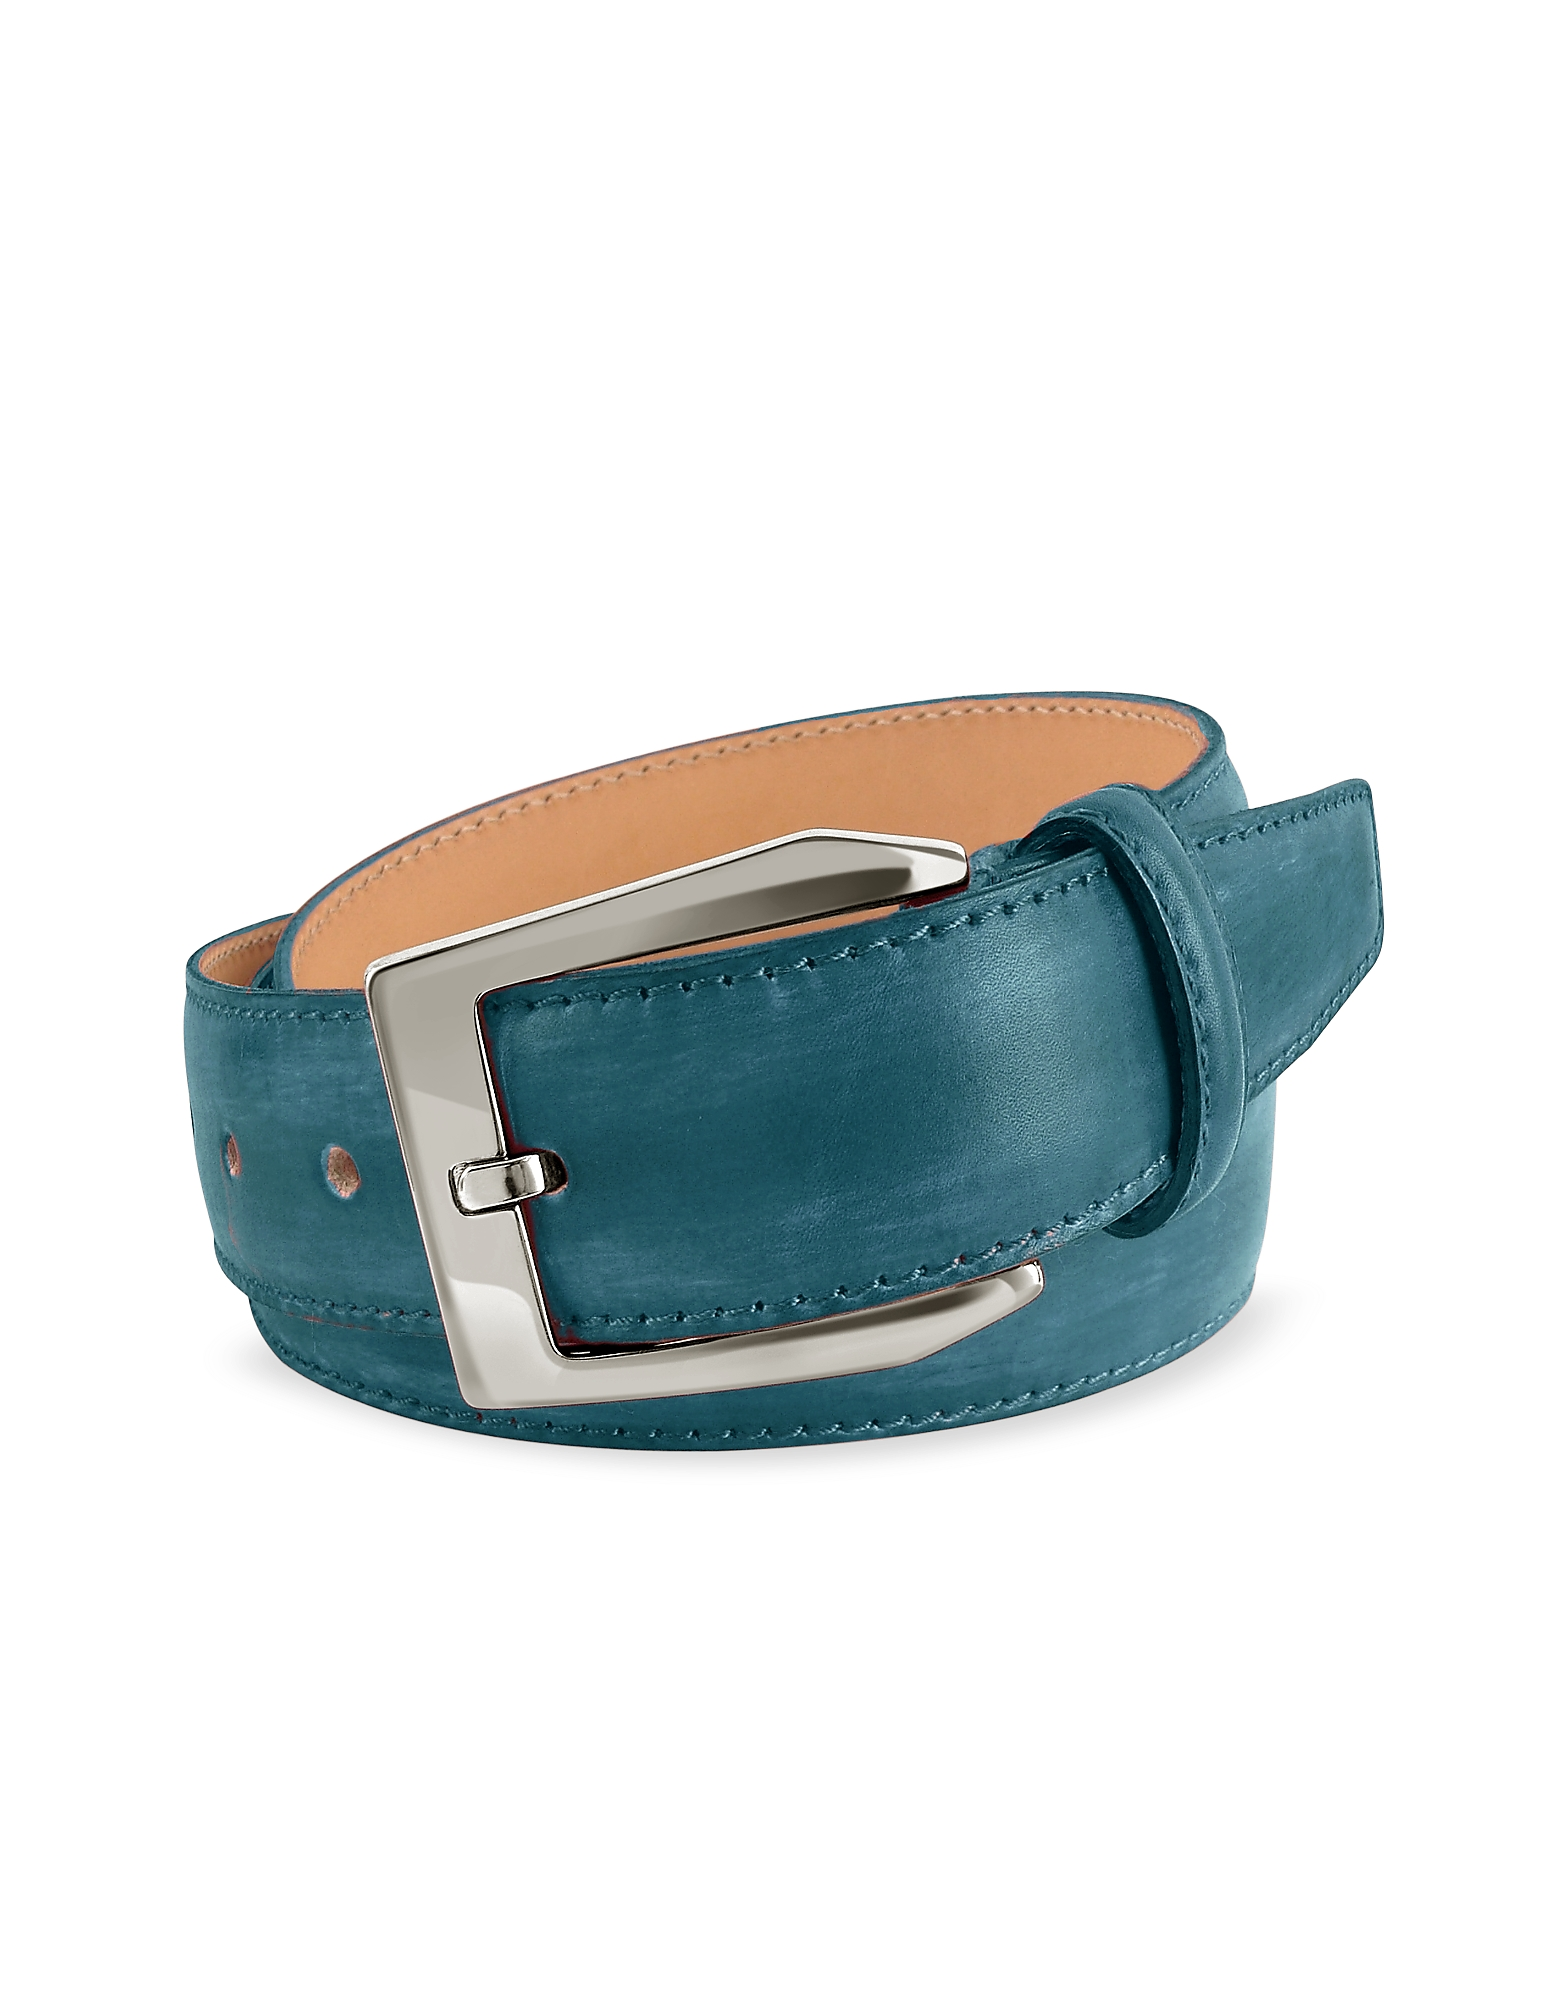 Pakerson Men's Belts, Men's Petrol Blue Hand Painted Italian Leather Belt